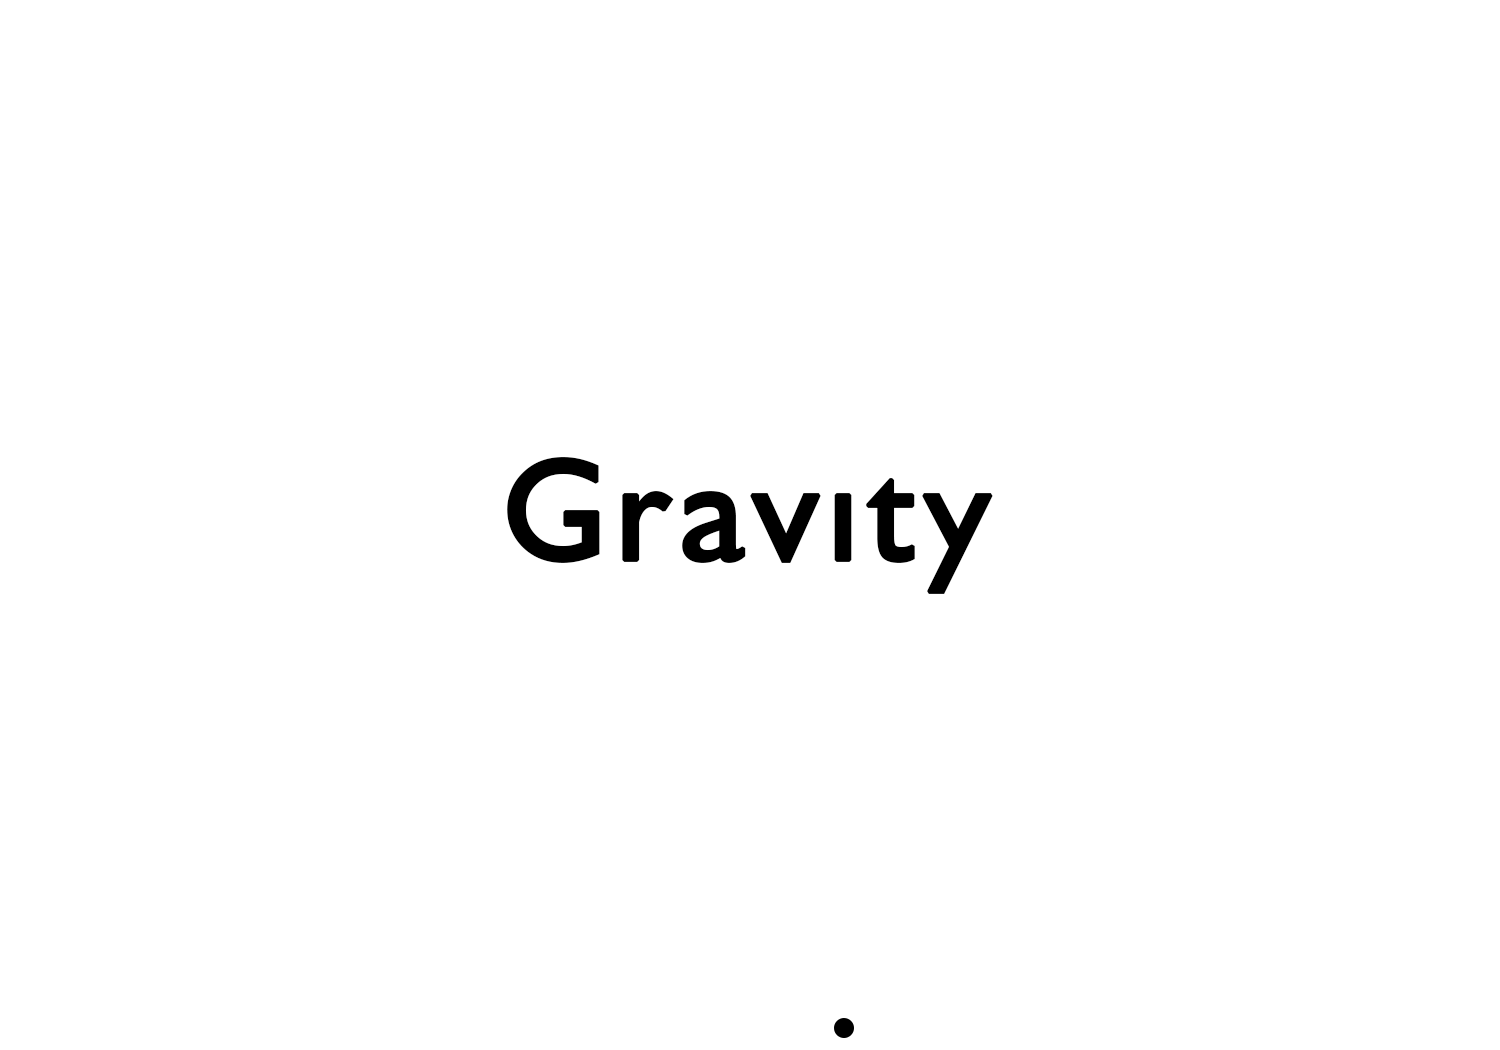 Gravity Text Logo Design Inspiration